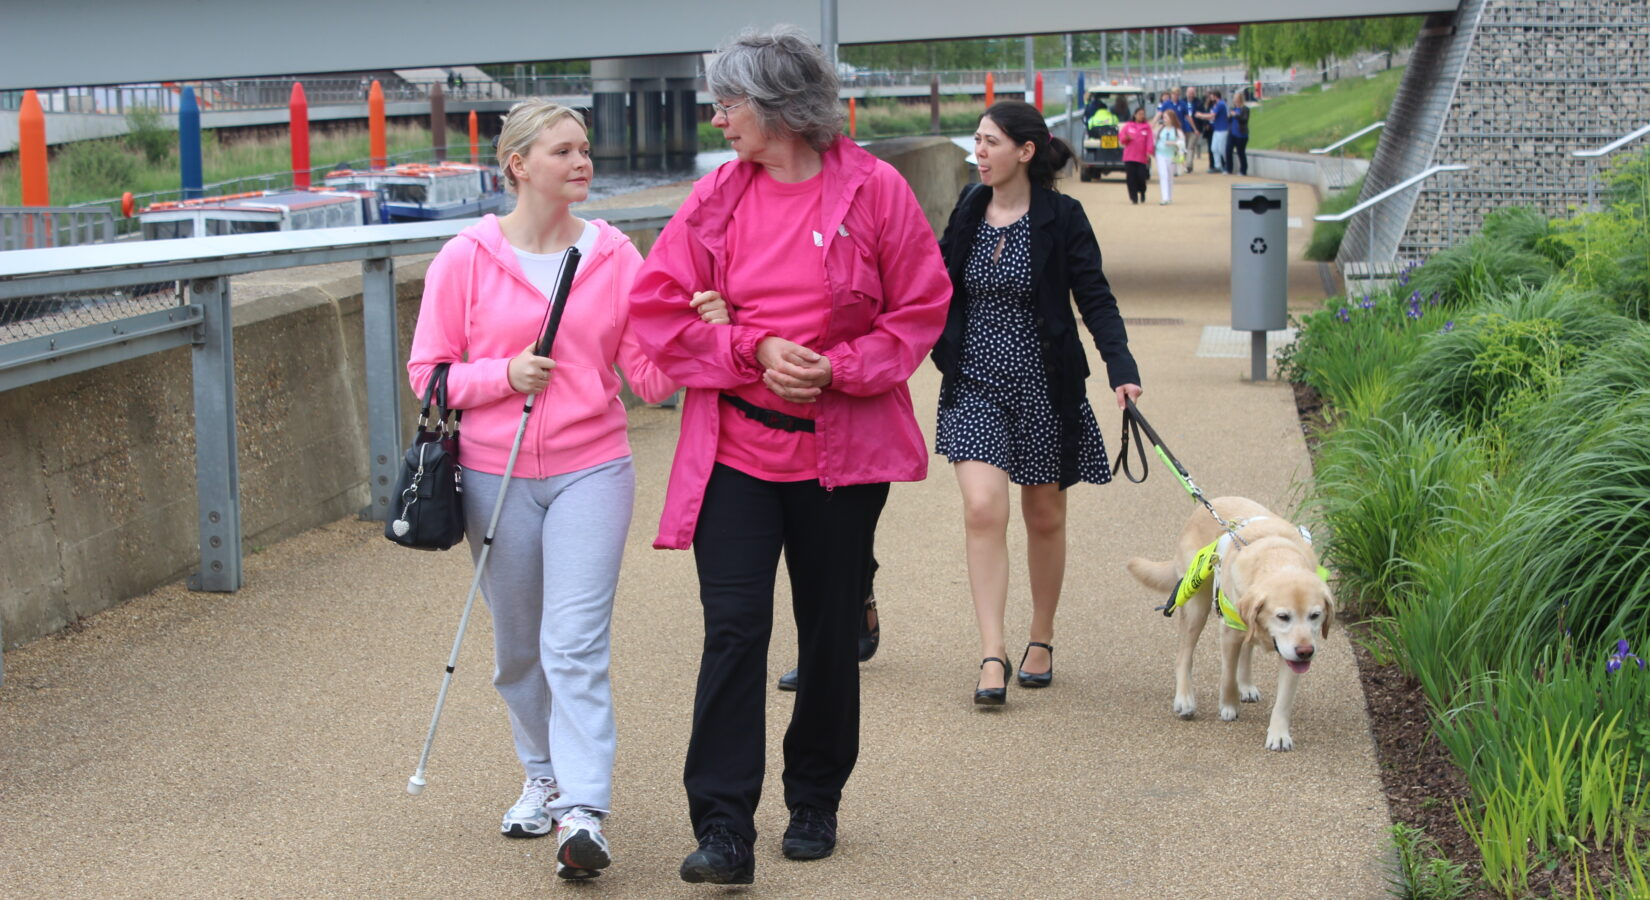 Image shows a Park Champion volunteer on Queen Elizabeth Olympic Park providing a sighted guide service to a visually impaired visitor.